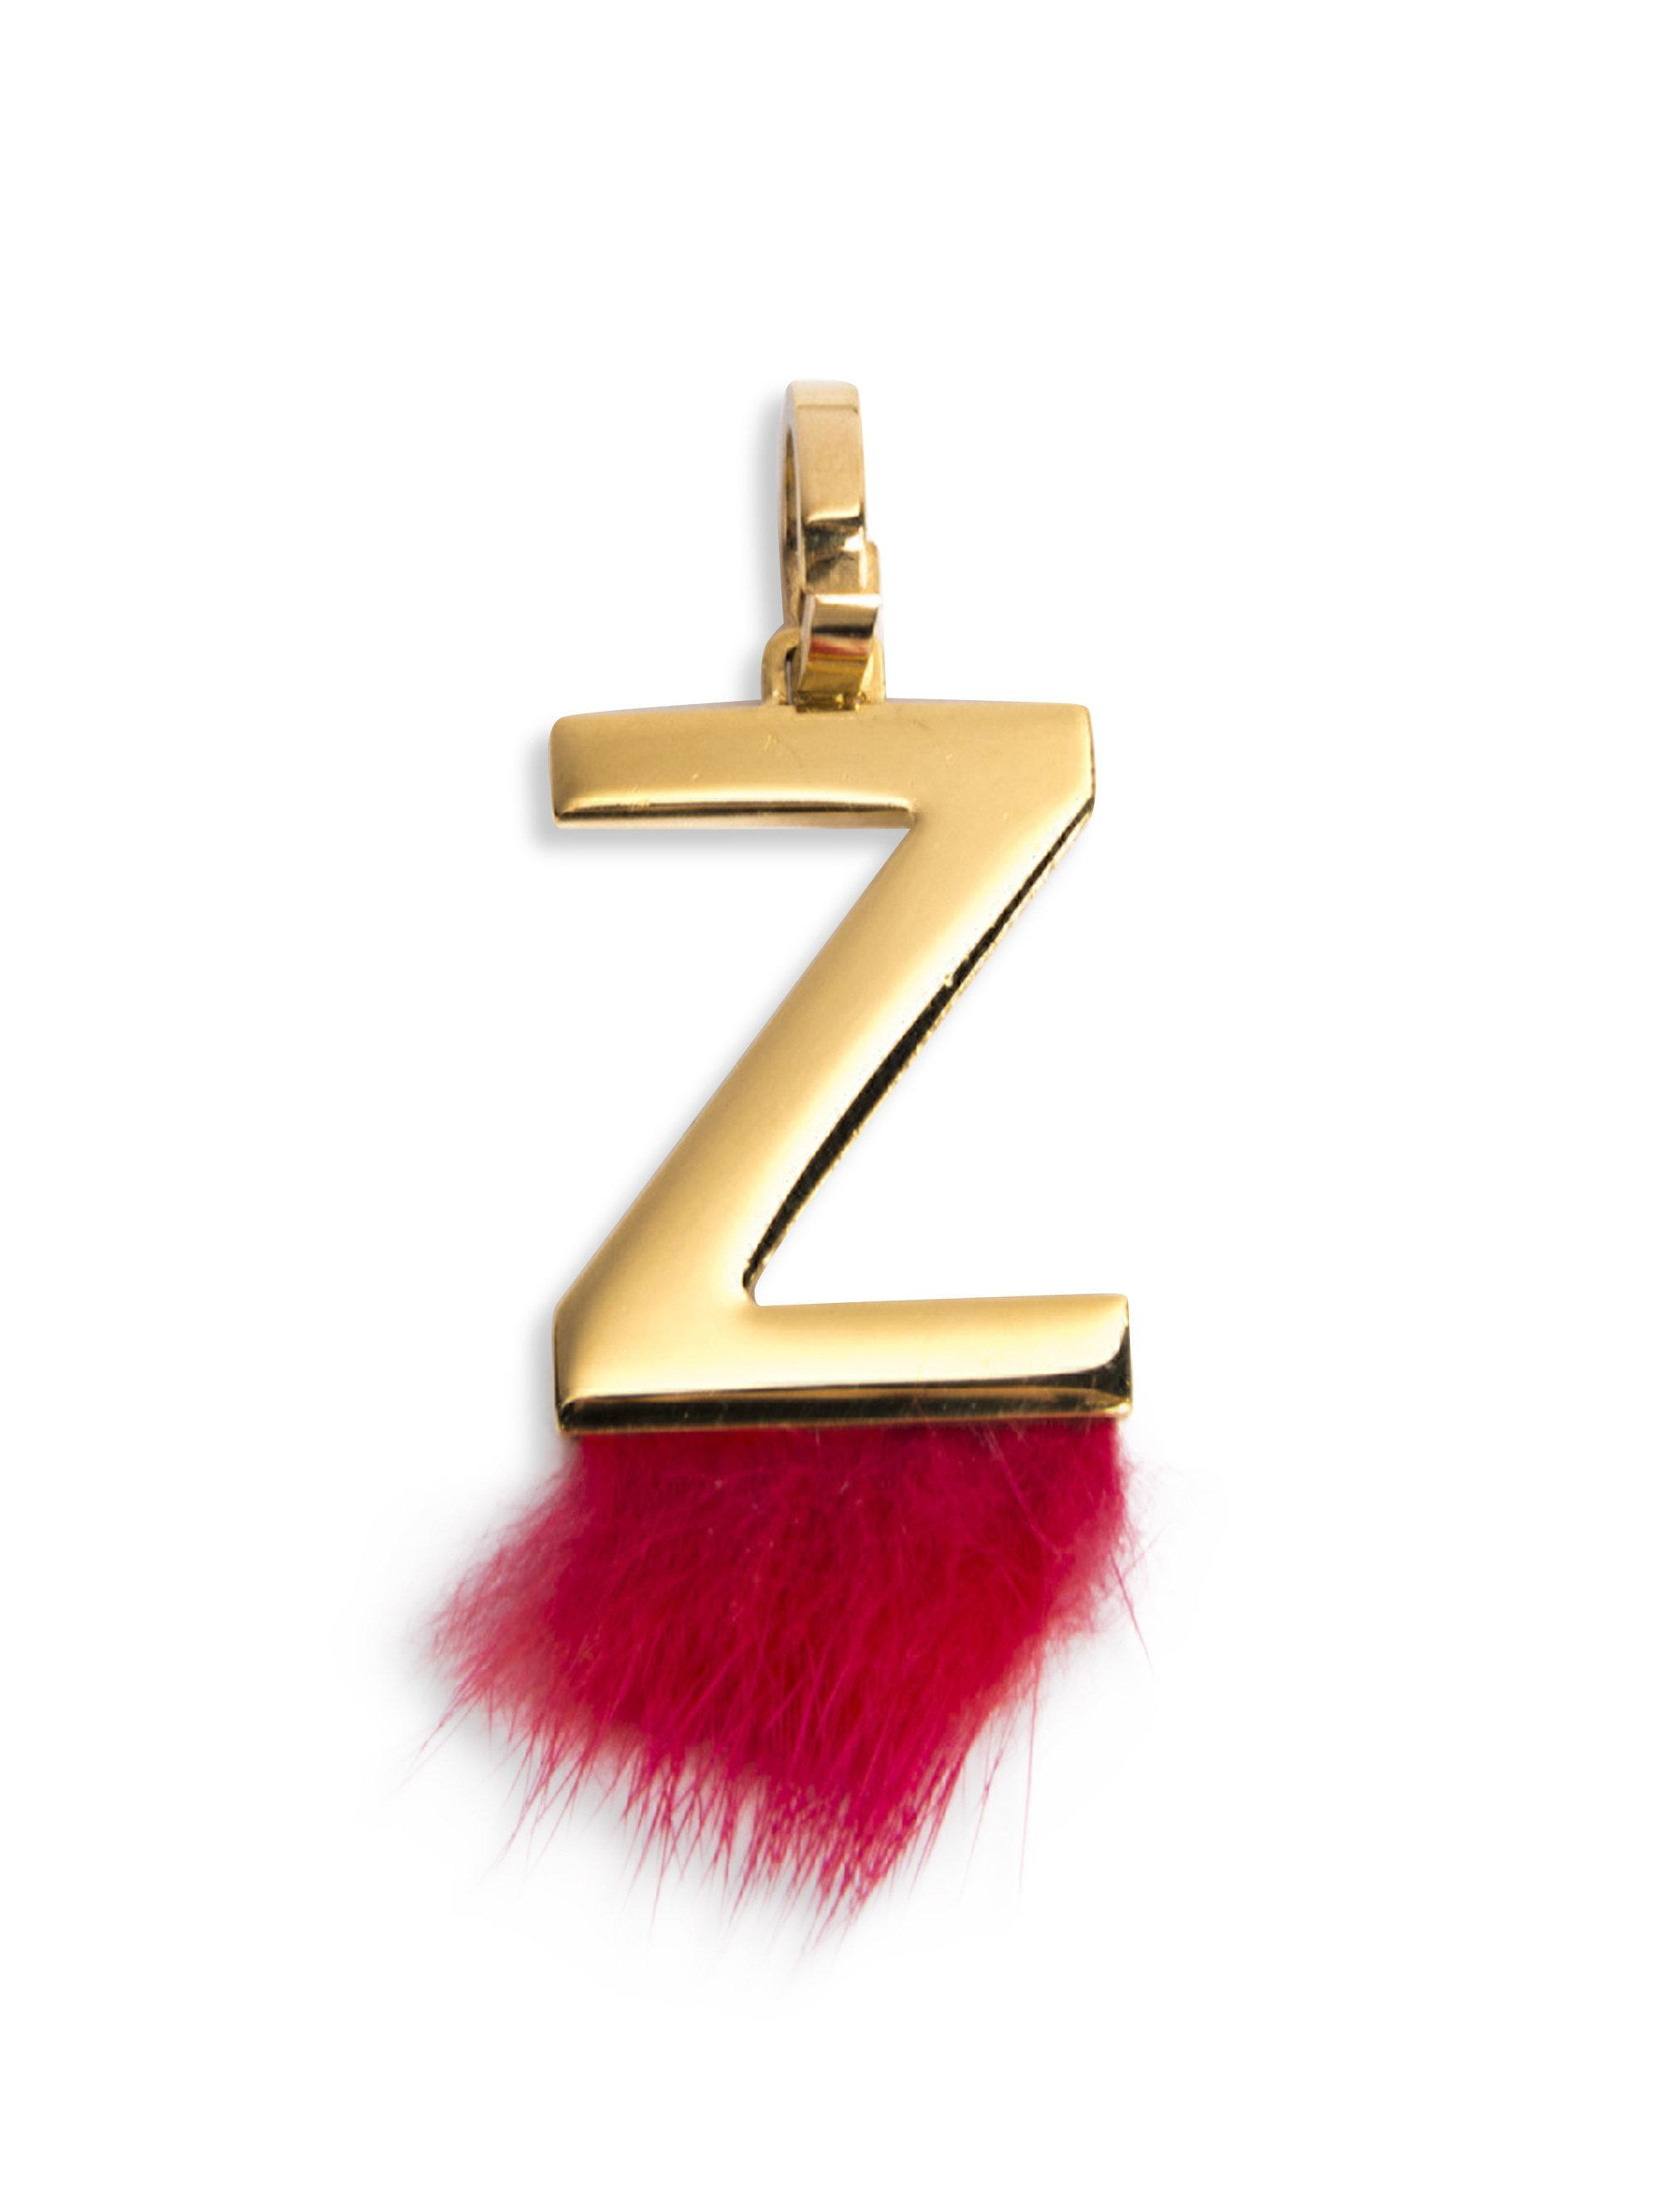 Womens Red Mink Fur-trimmed Initial Charm sale retailer 2324f 549c2   Gallery. Previously sold at Farfetch · Womens Fendi Bag Bugs ... c3b0bc1d7dc03